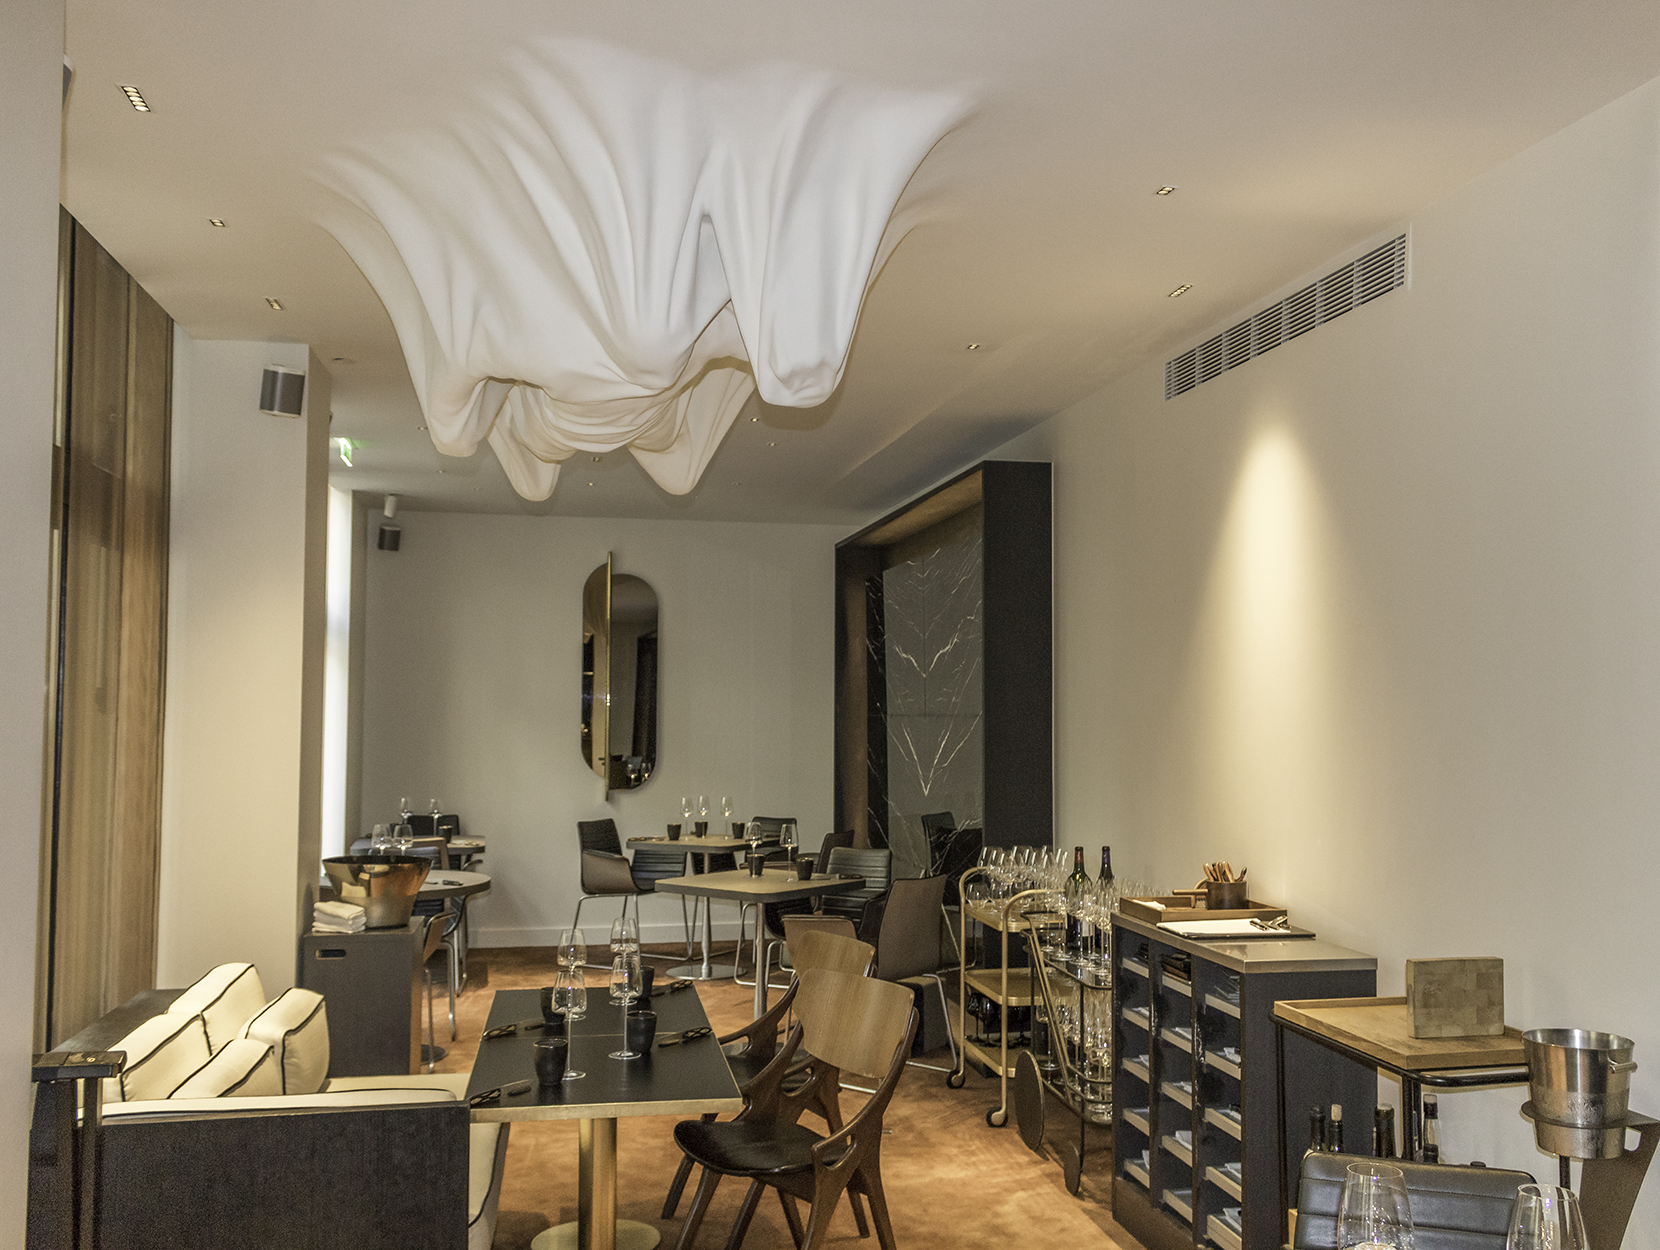 Paris restaurants in style interview with chef akrame